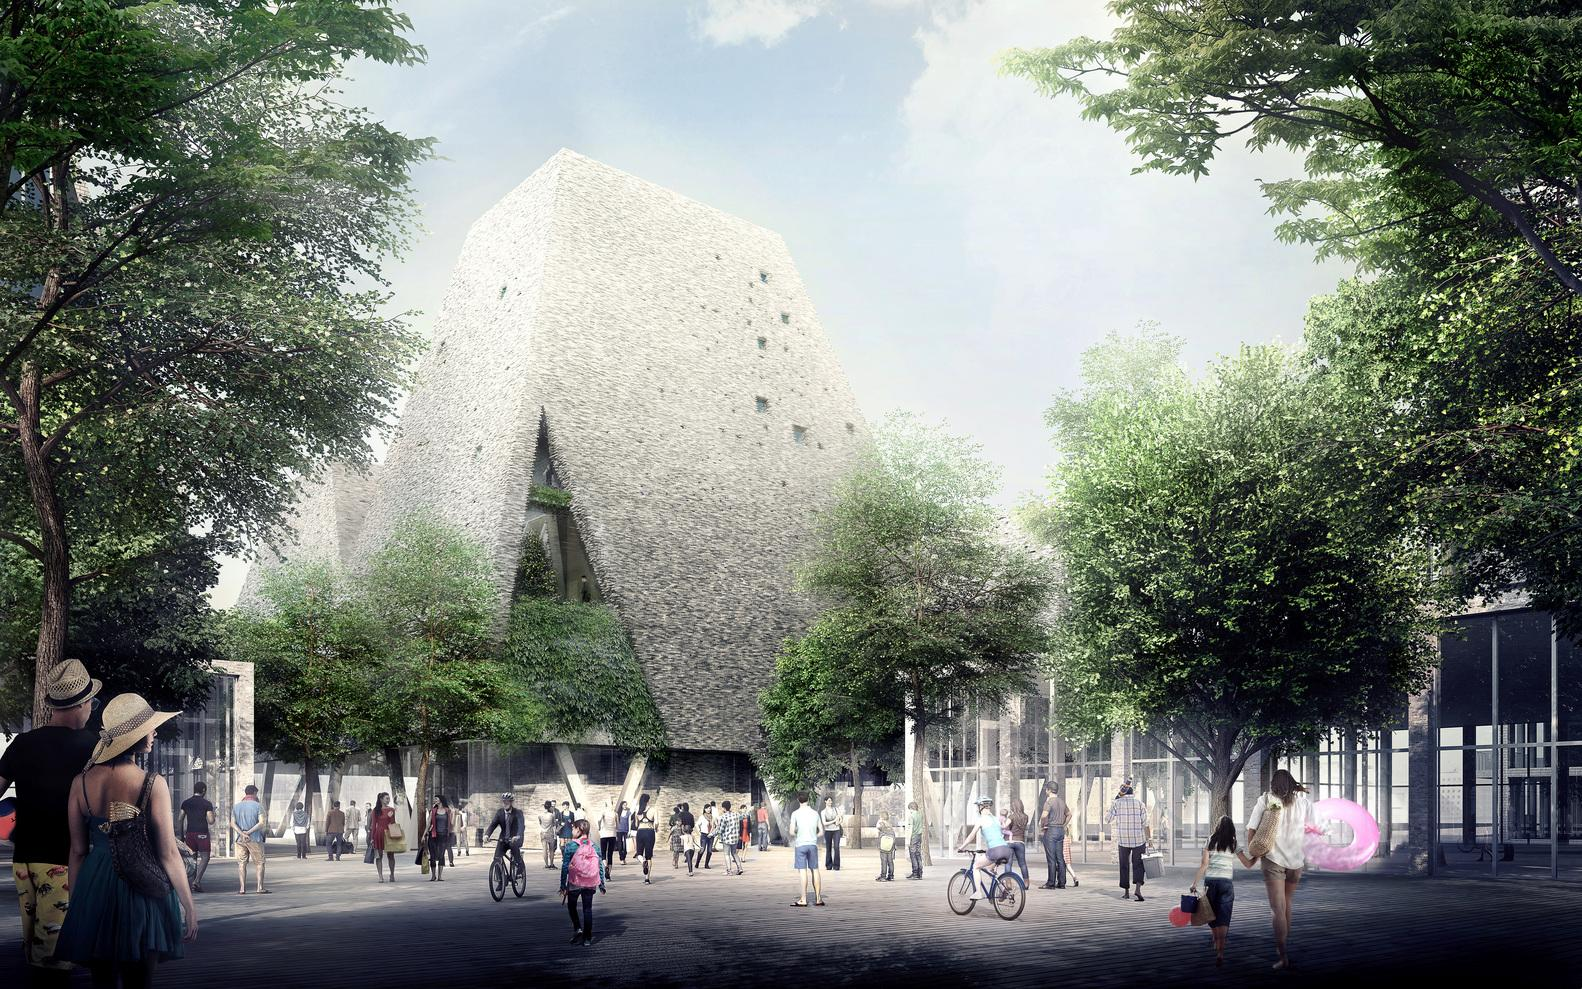 Associate architects Cornelius + Vöge Aps, engineering firm Søren Jensen and consulting architect Niels Sigsgaard are collaborating on the project / Kengo Kuma and Luxigon